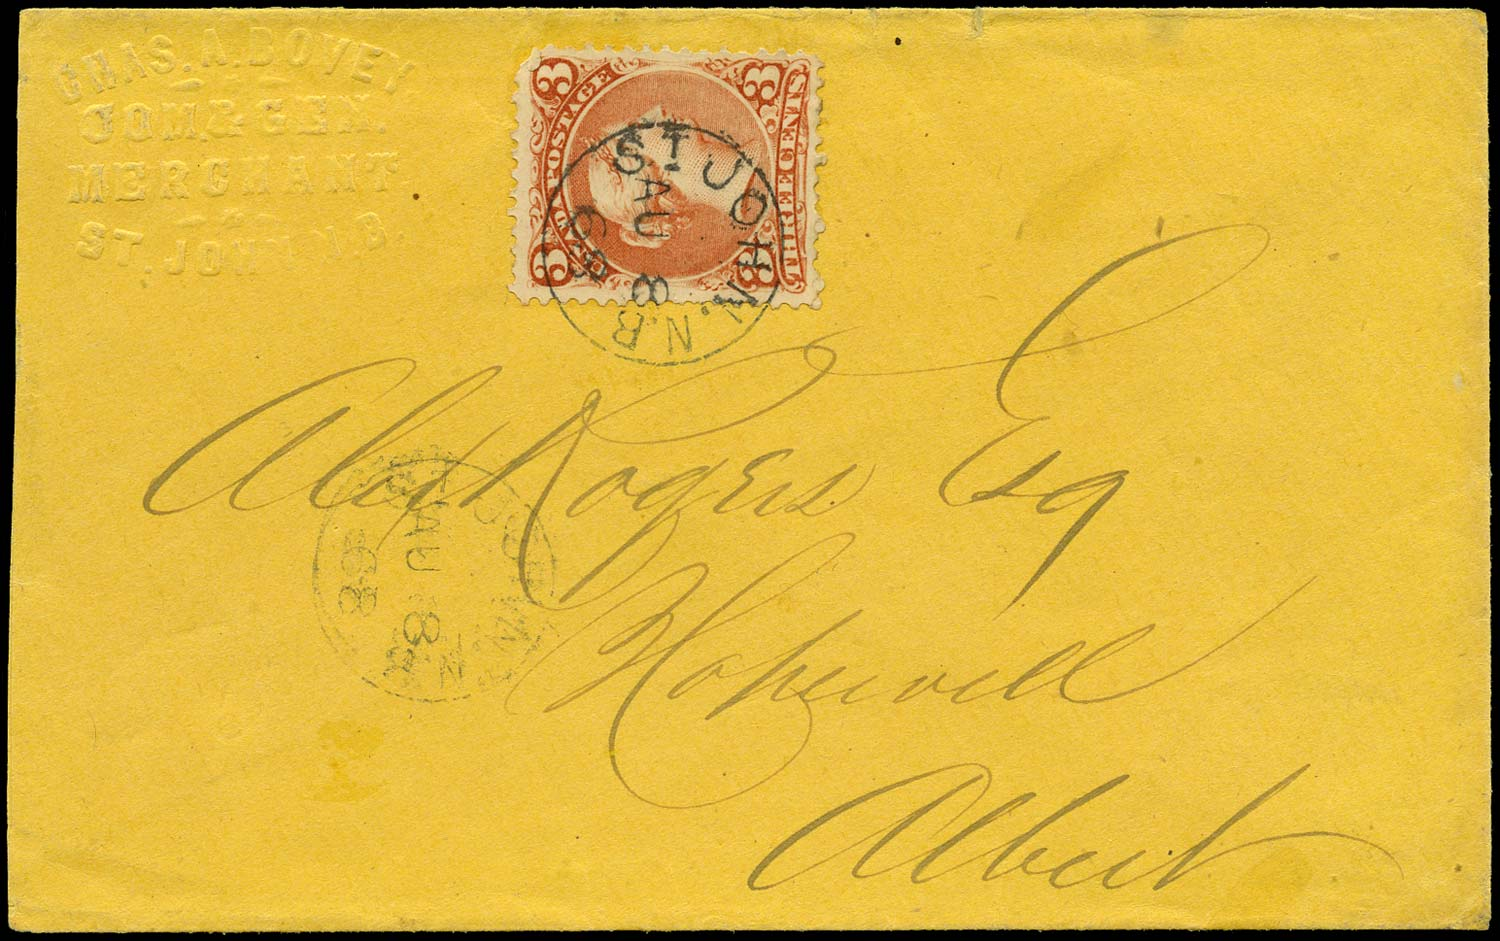 CANADA 1868  SG49 Cover from St John to Hopewell franked 3c Large Queen